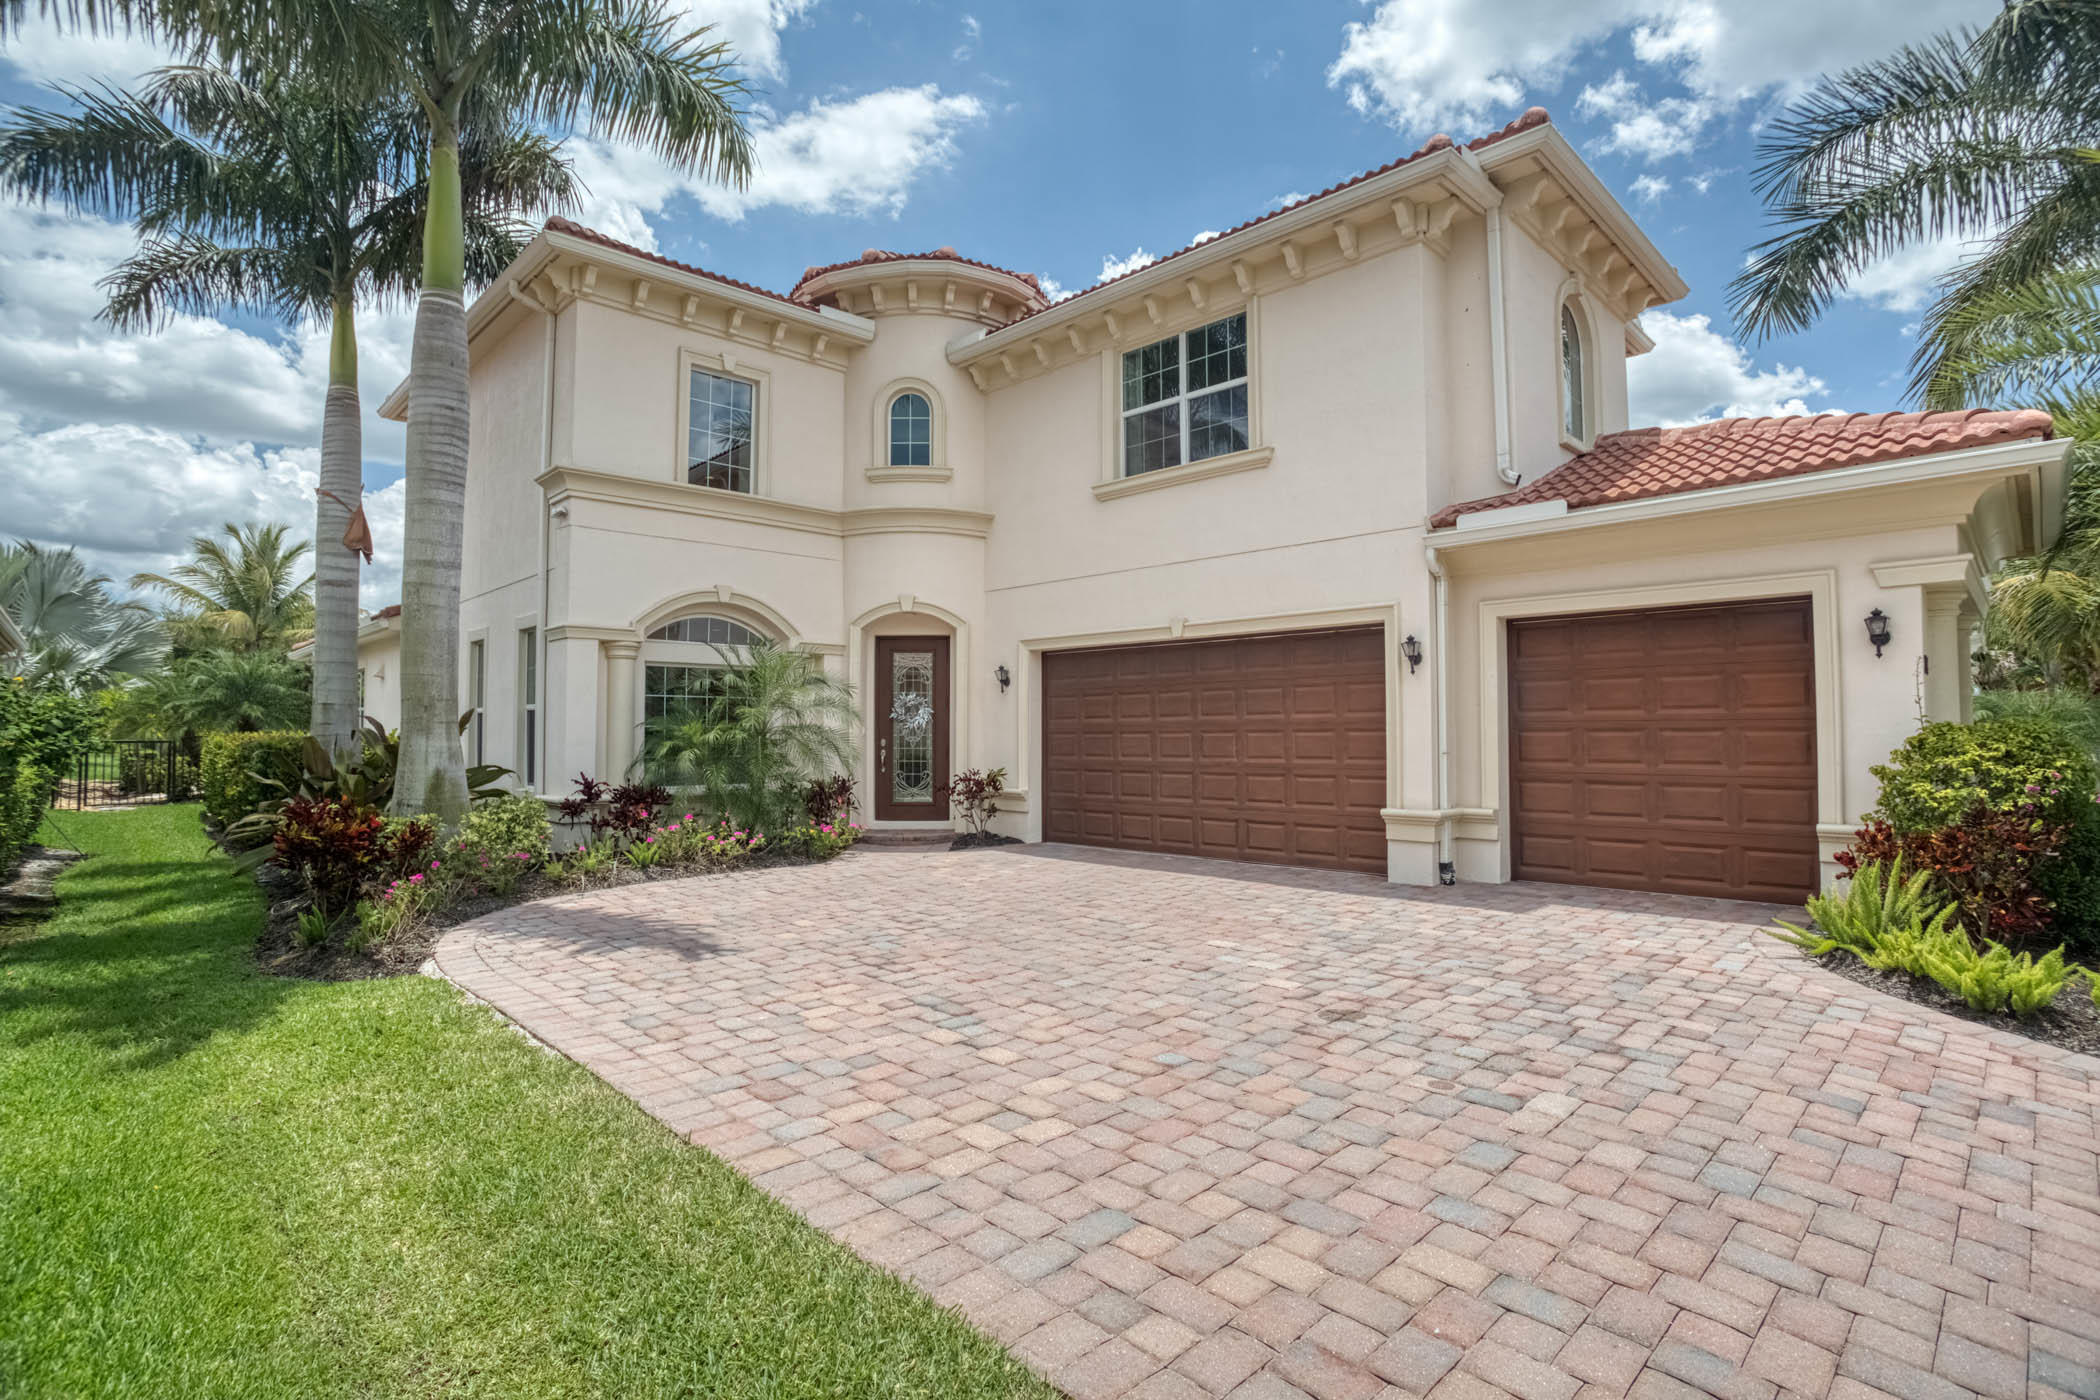 New Home for sale at 204 Carina Drive in Jupiter